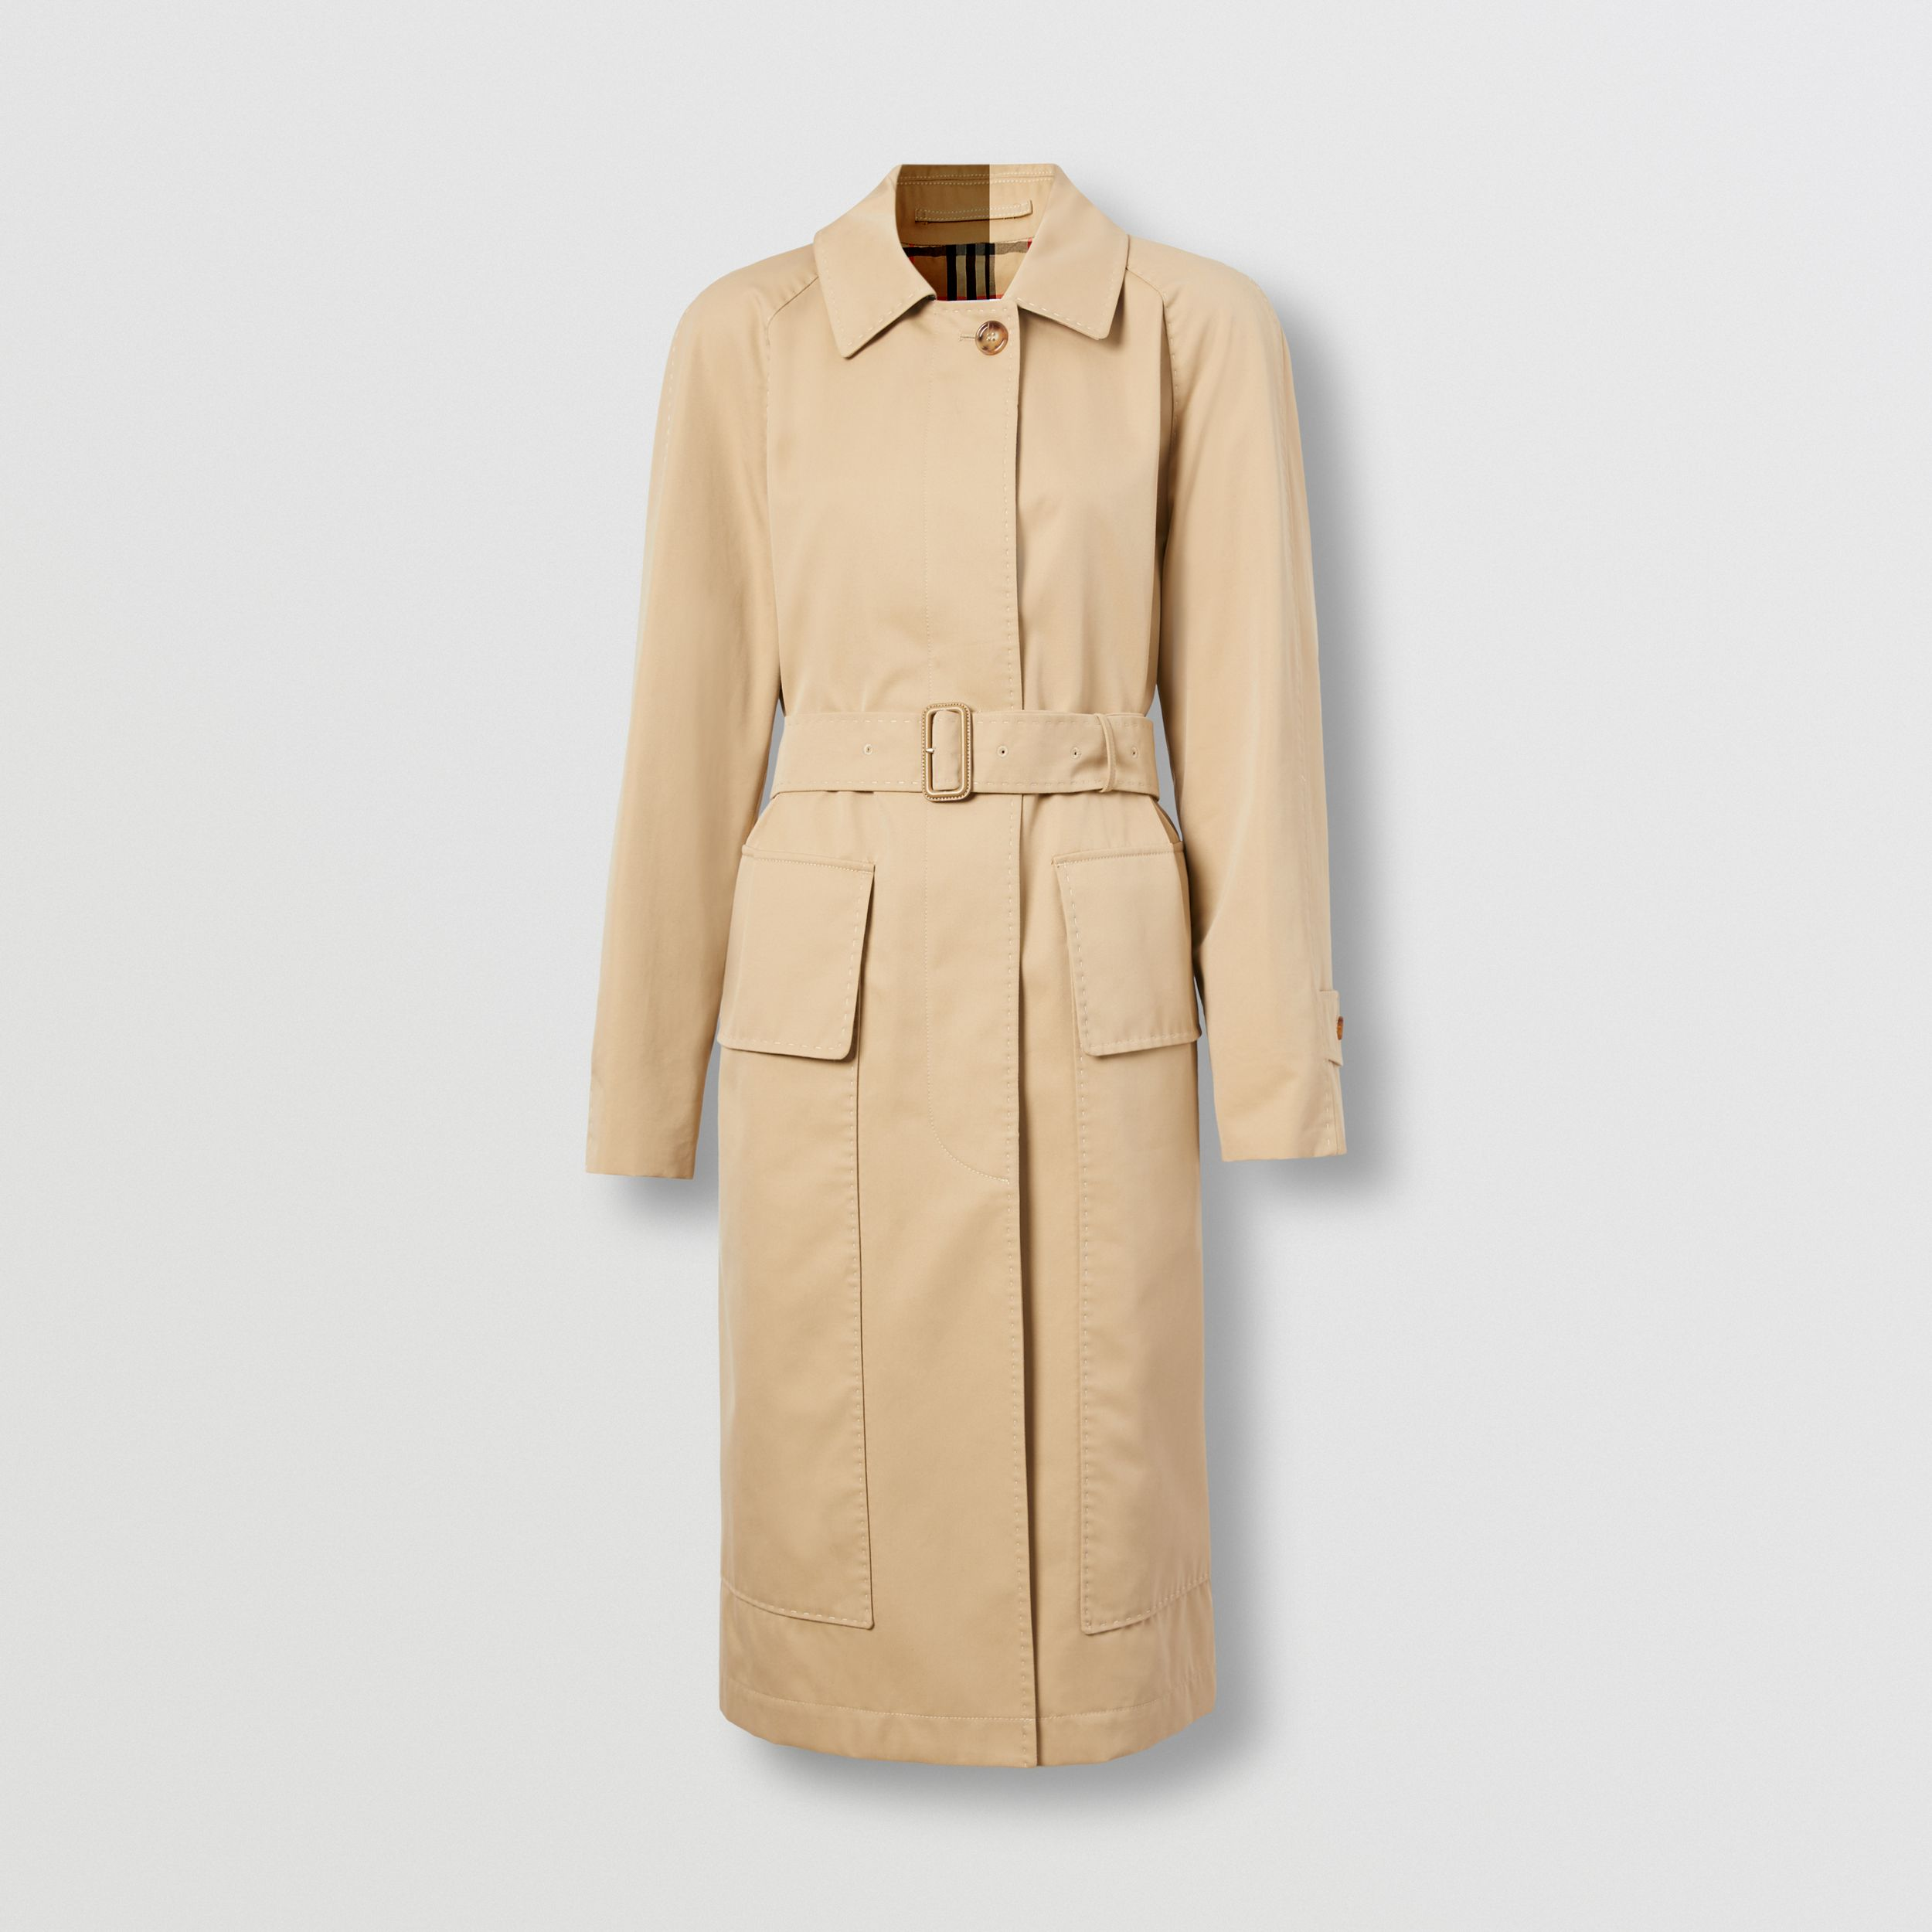 Cotton Gabardine Belted Car Coat in Honey - Women | Burberry - 4